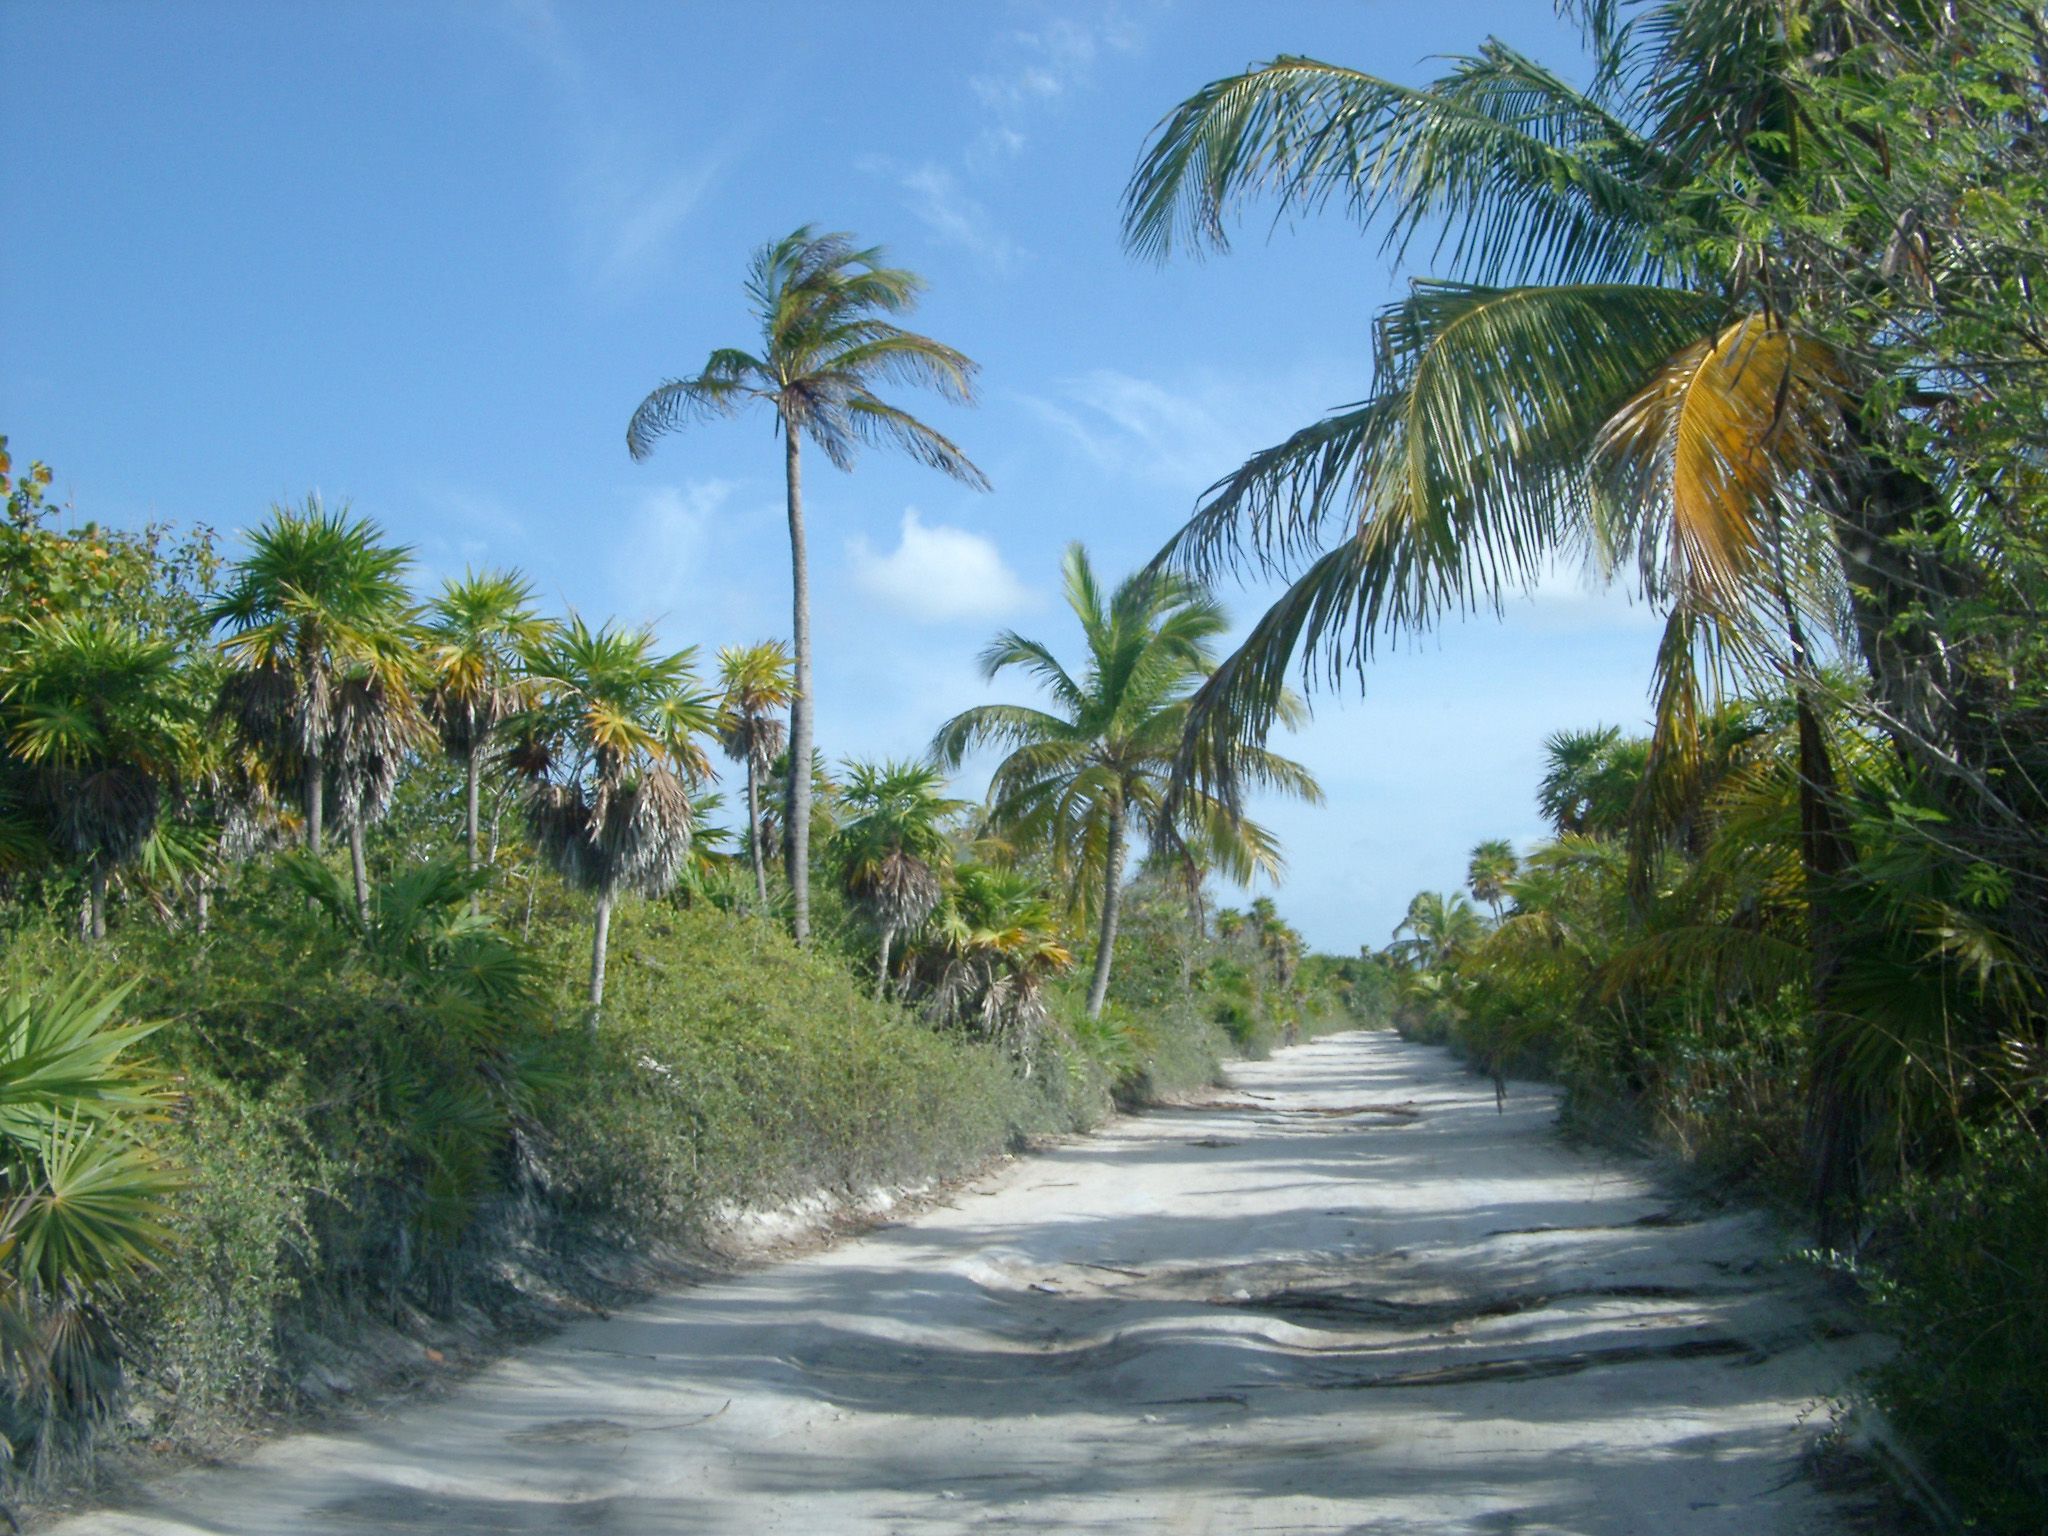 Dirt road through tropical jungle in Mexico lined with palm trees providing shade on a hot summer day in a travel, vacation and getaway concept